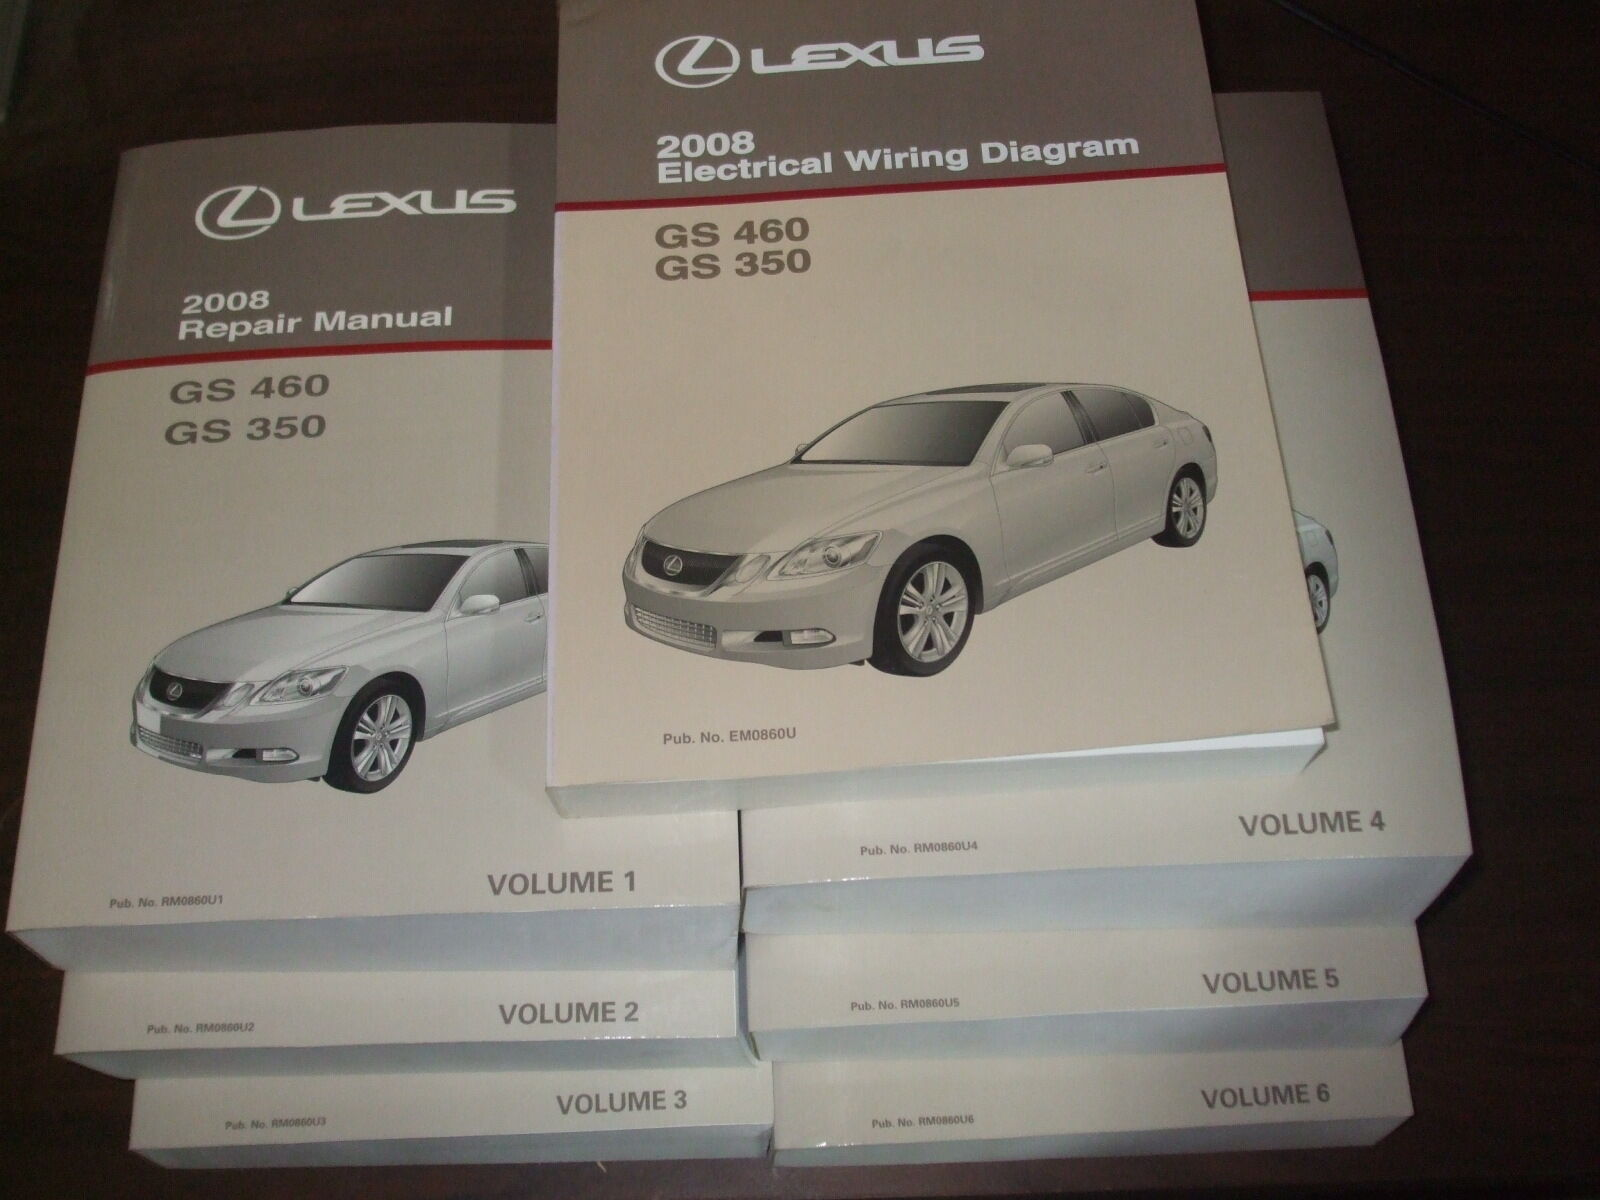 2008 Lexus Gs350 Gs460 Repair Manual 7 Volume Set Gs 350 460 Shop Electrical Wiring Diagram 1 Of 1only Available